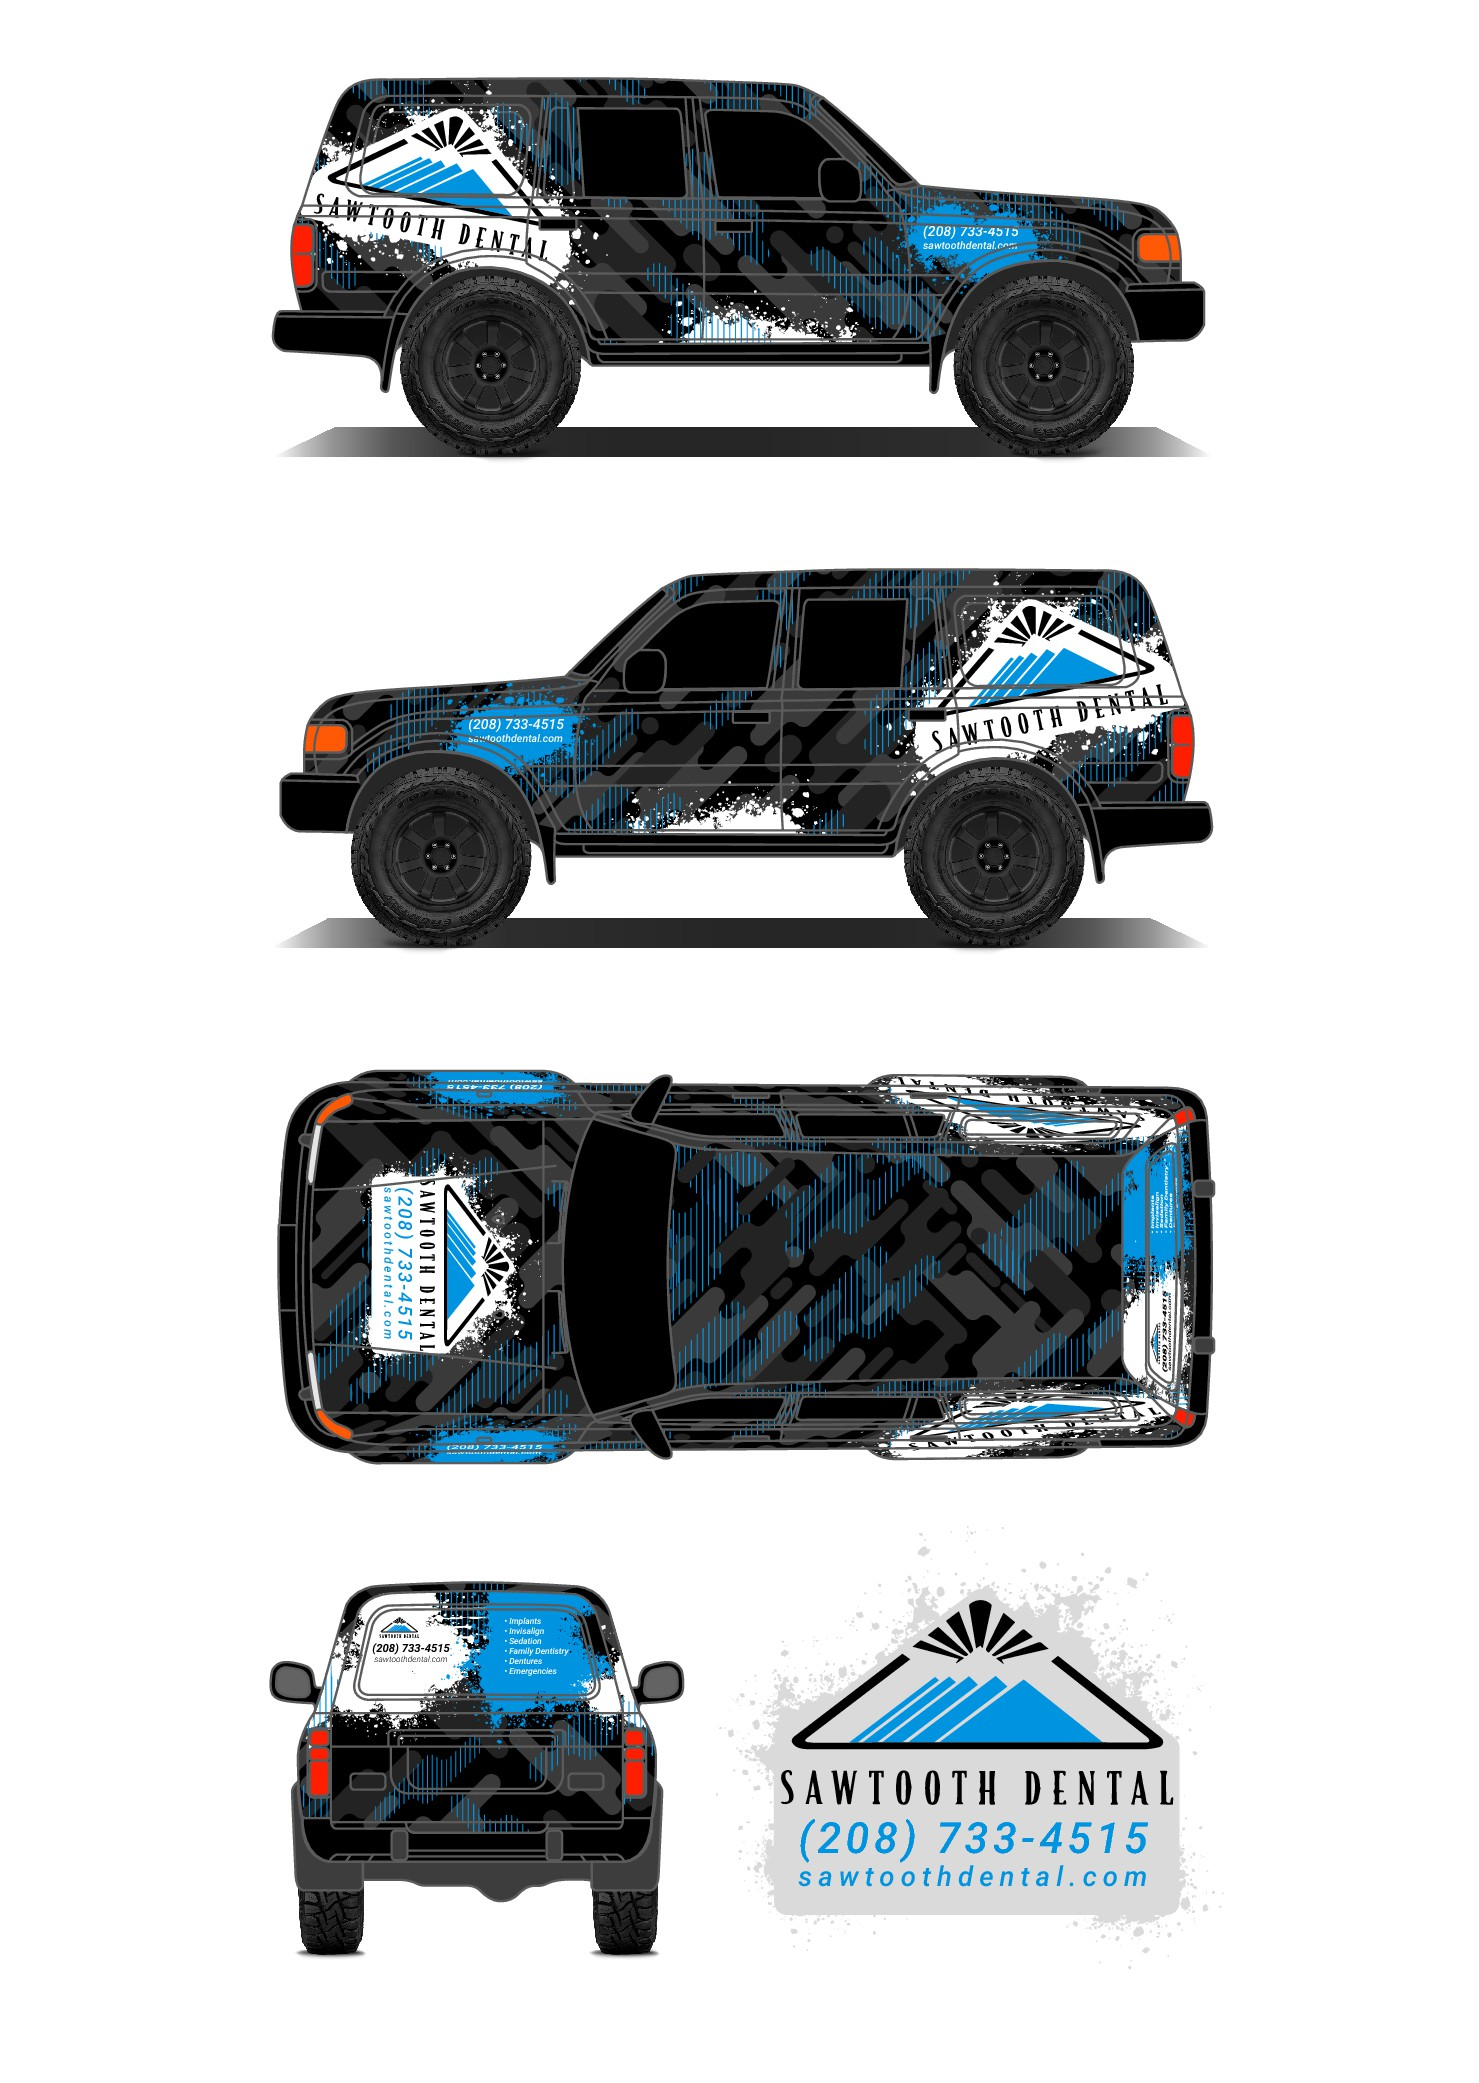 Design a car wrap for the dental office you'll want to go to!